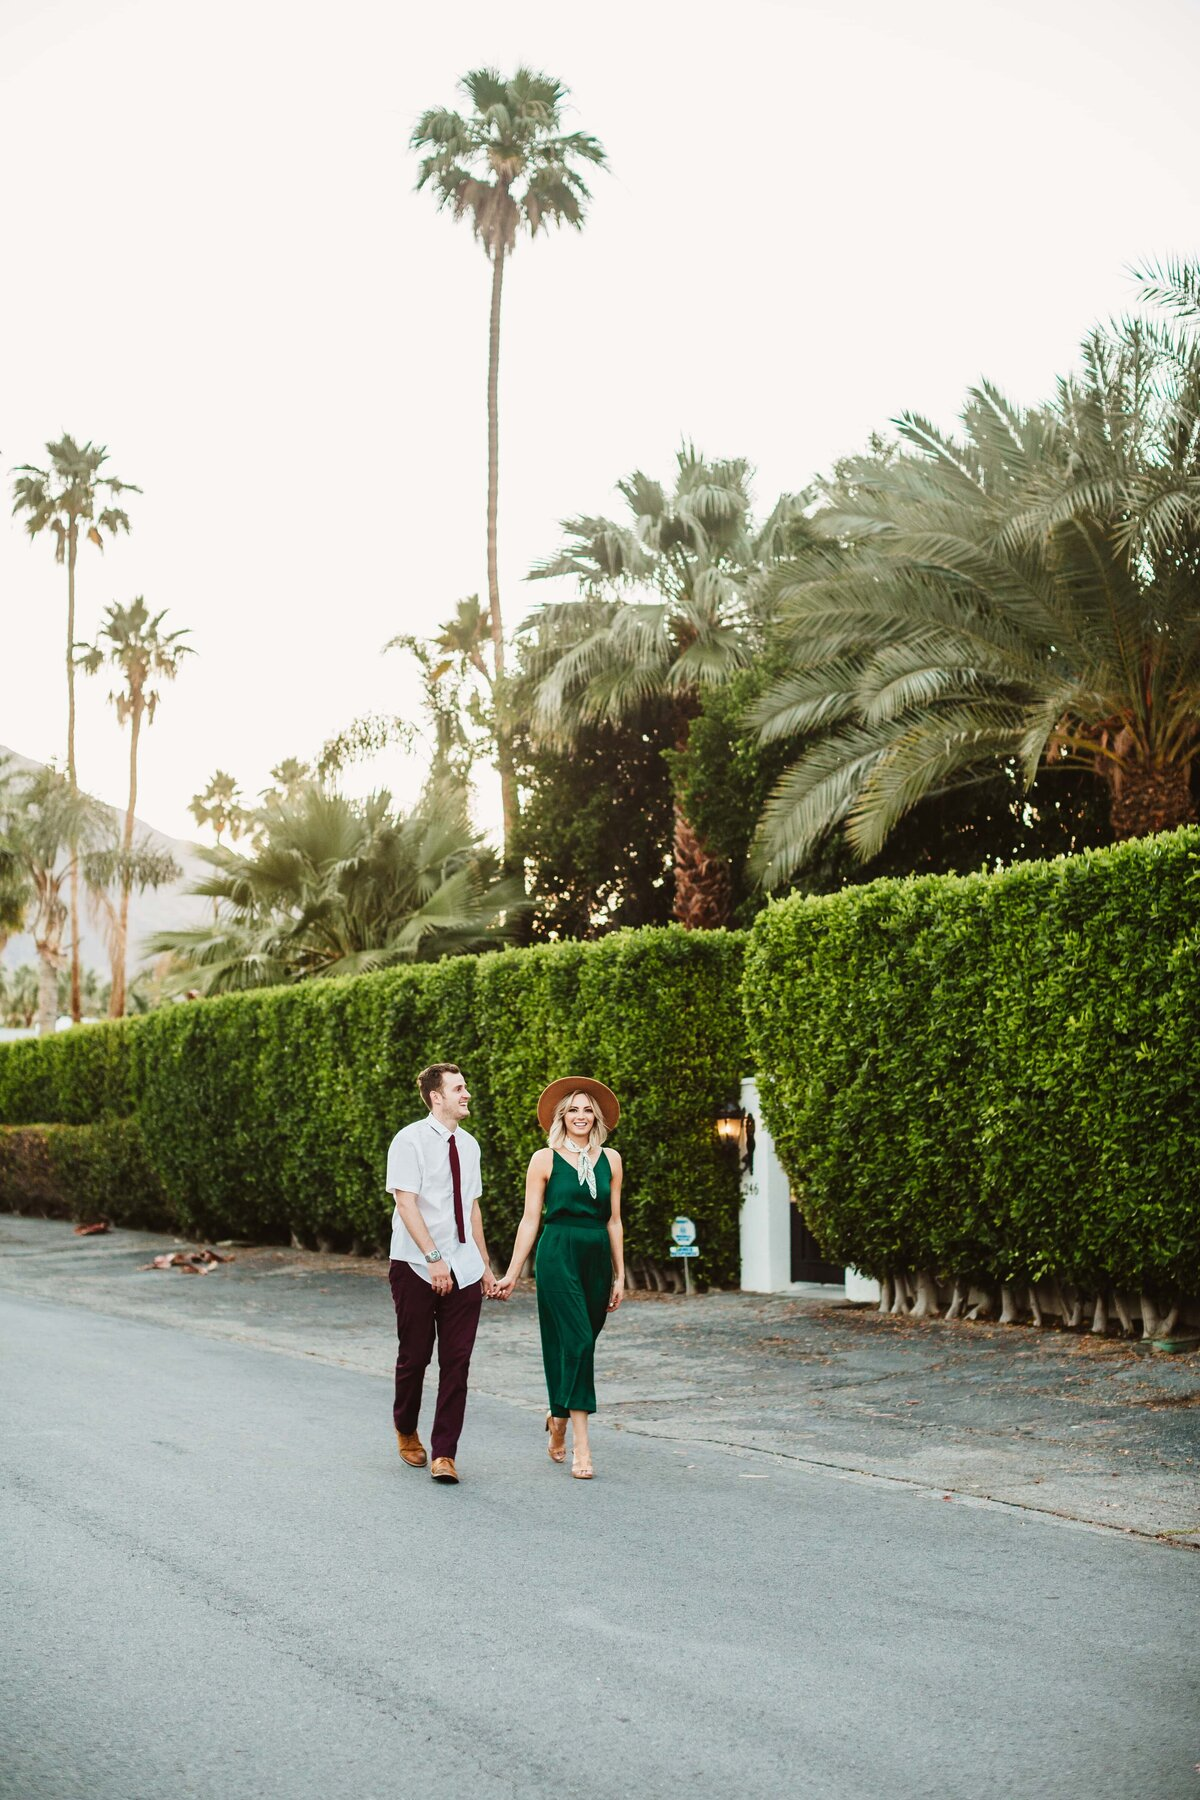 couple-downtown-palm-springs-street